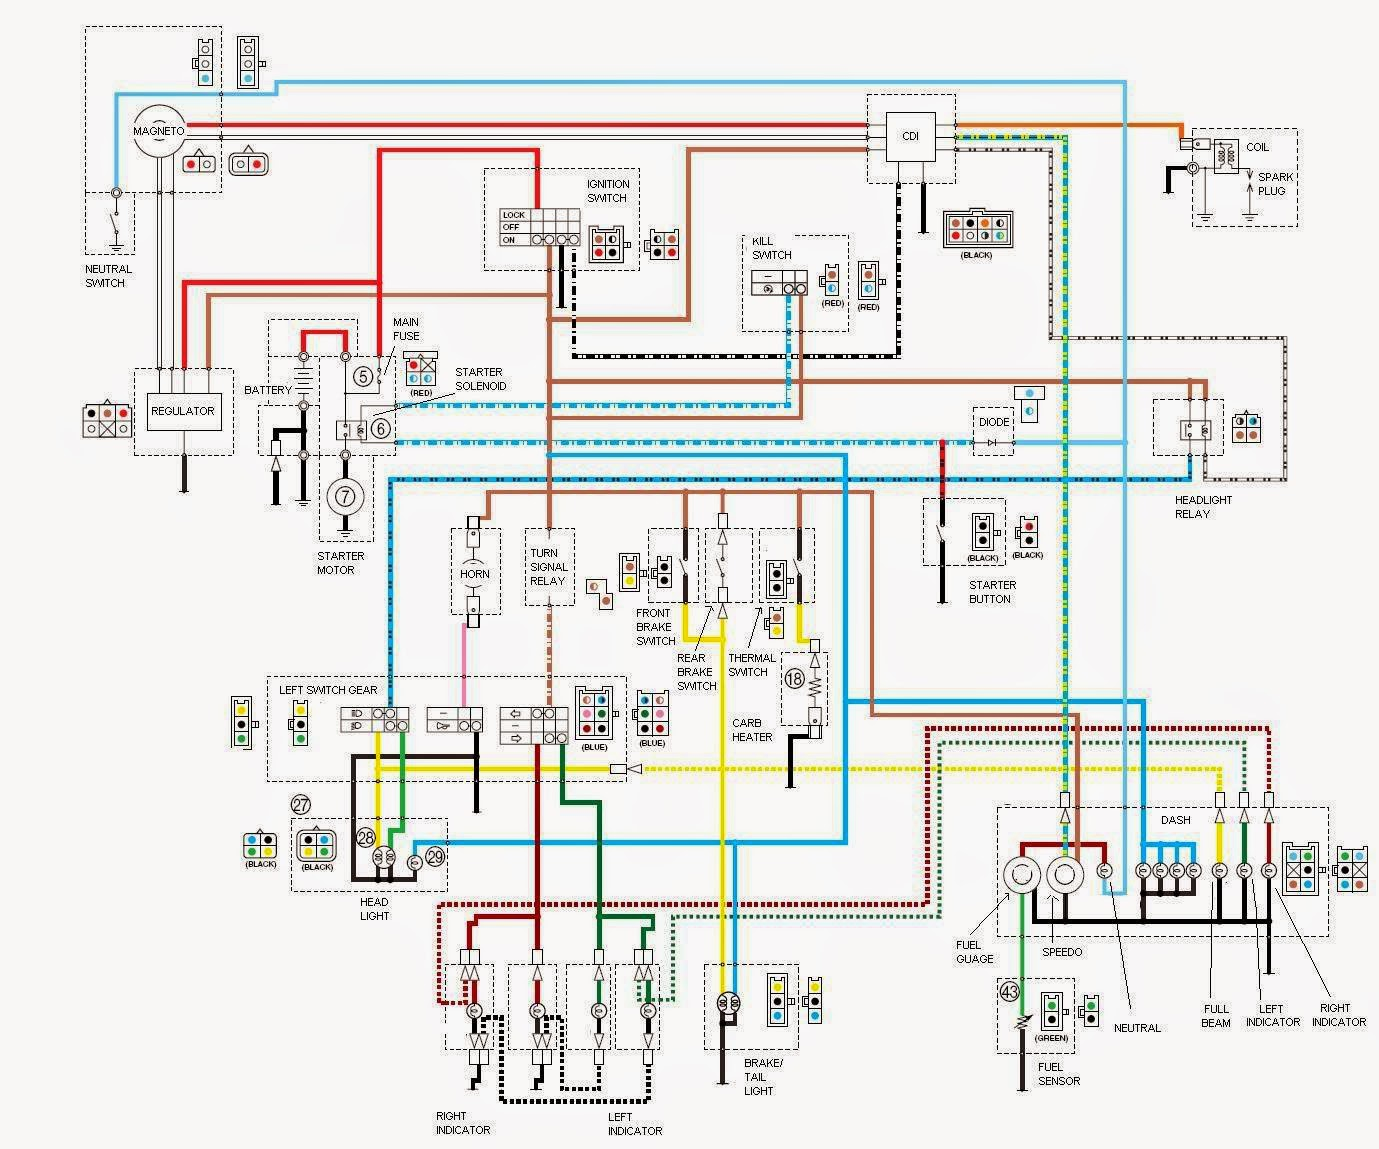 wiring diagrams for yamaha motorcycles the wiring diagram yamaha ybr 125 owner blog yamaha ybr 125 electrical system wiring diagram